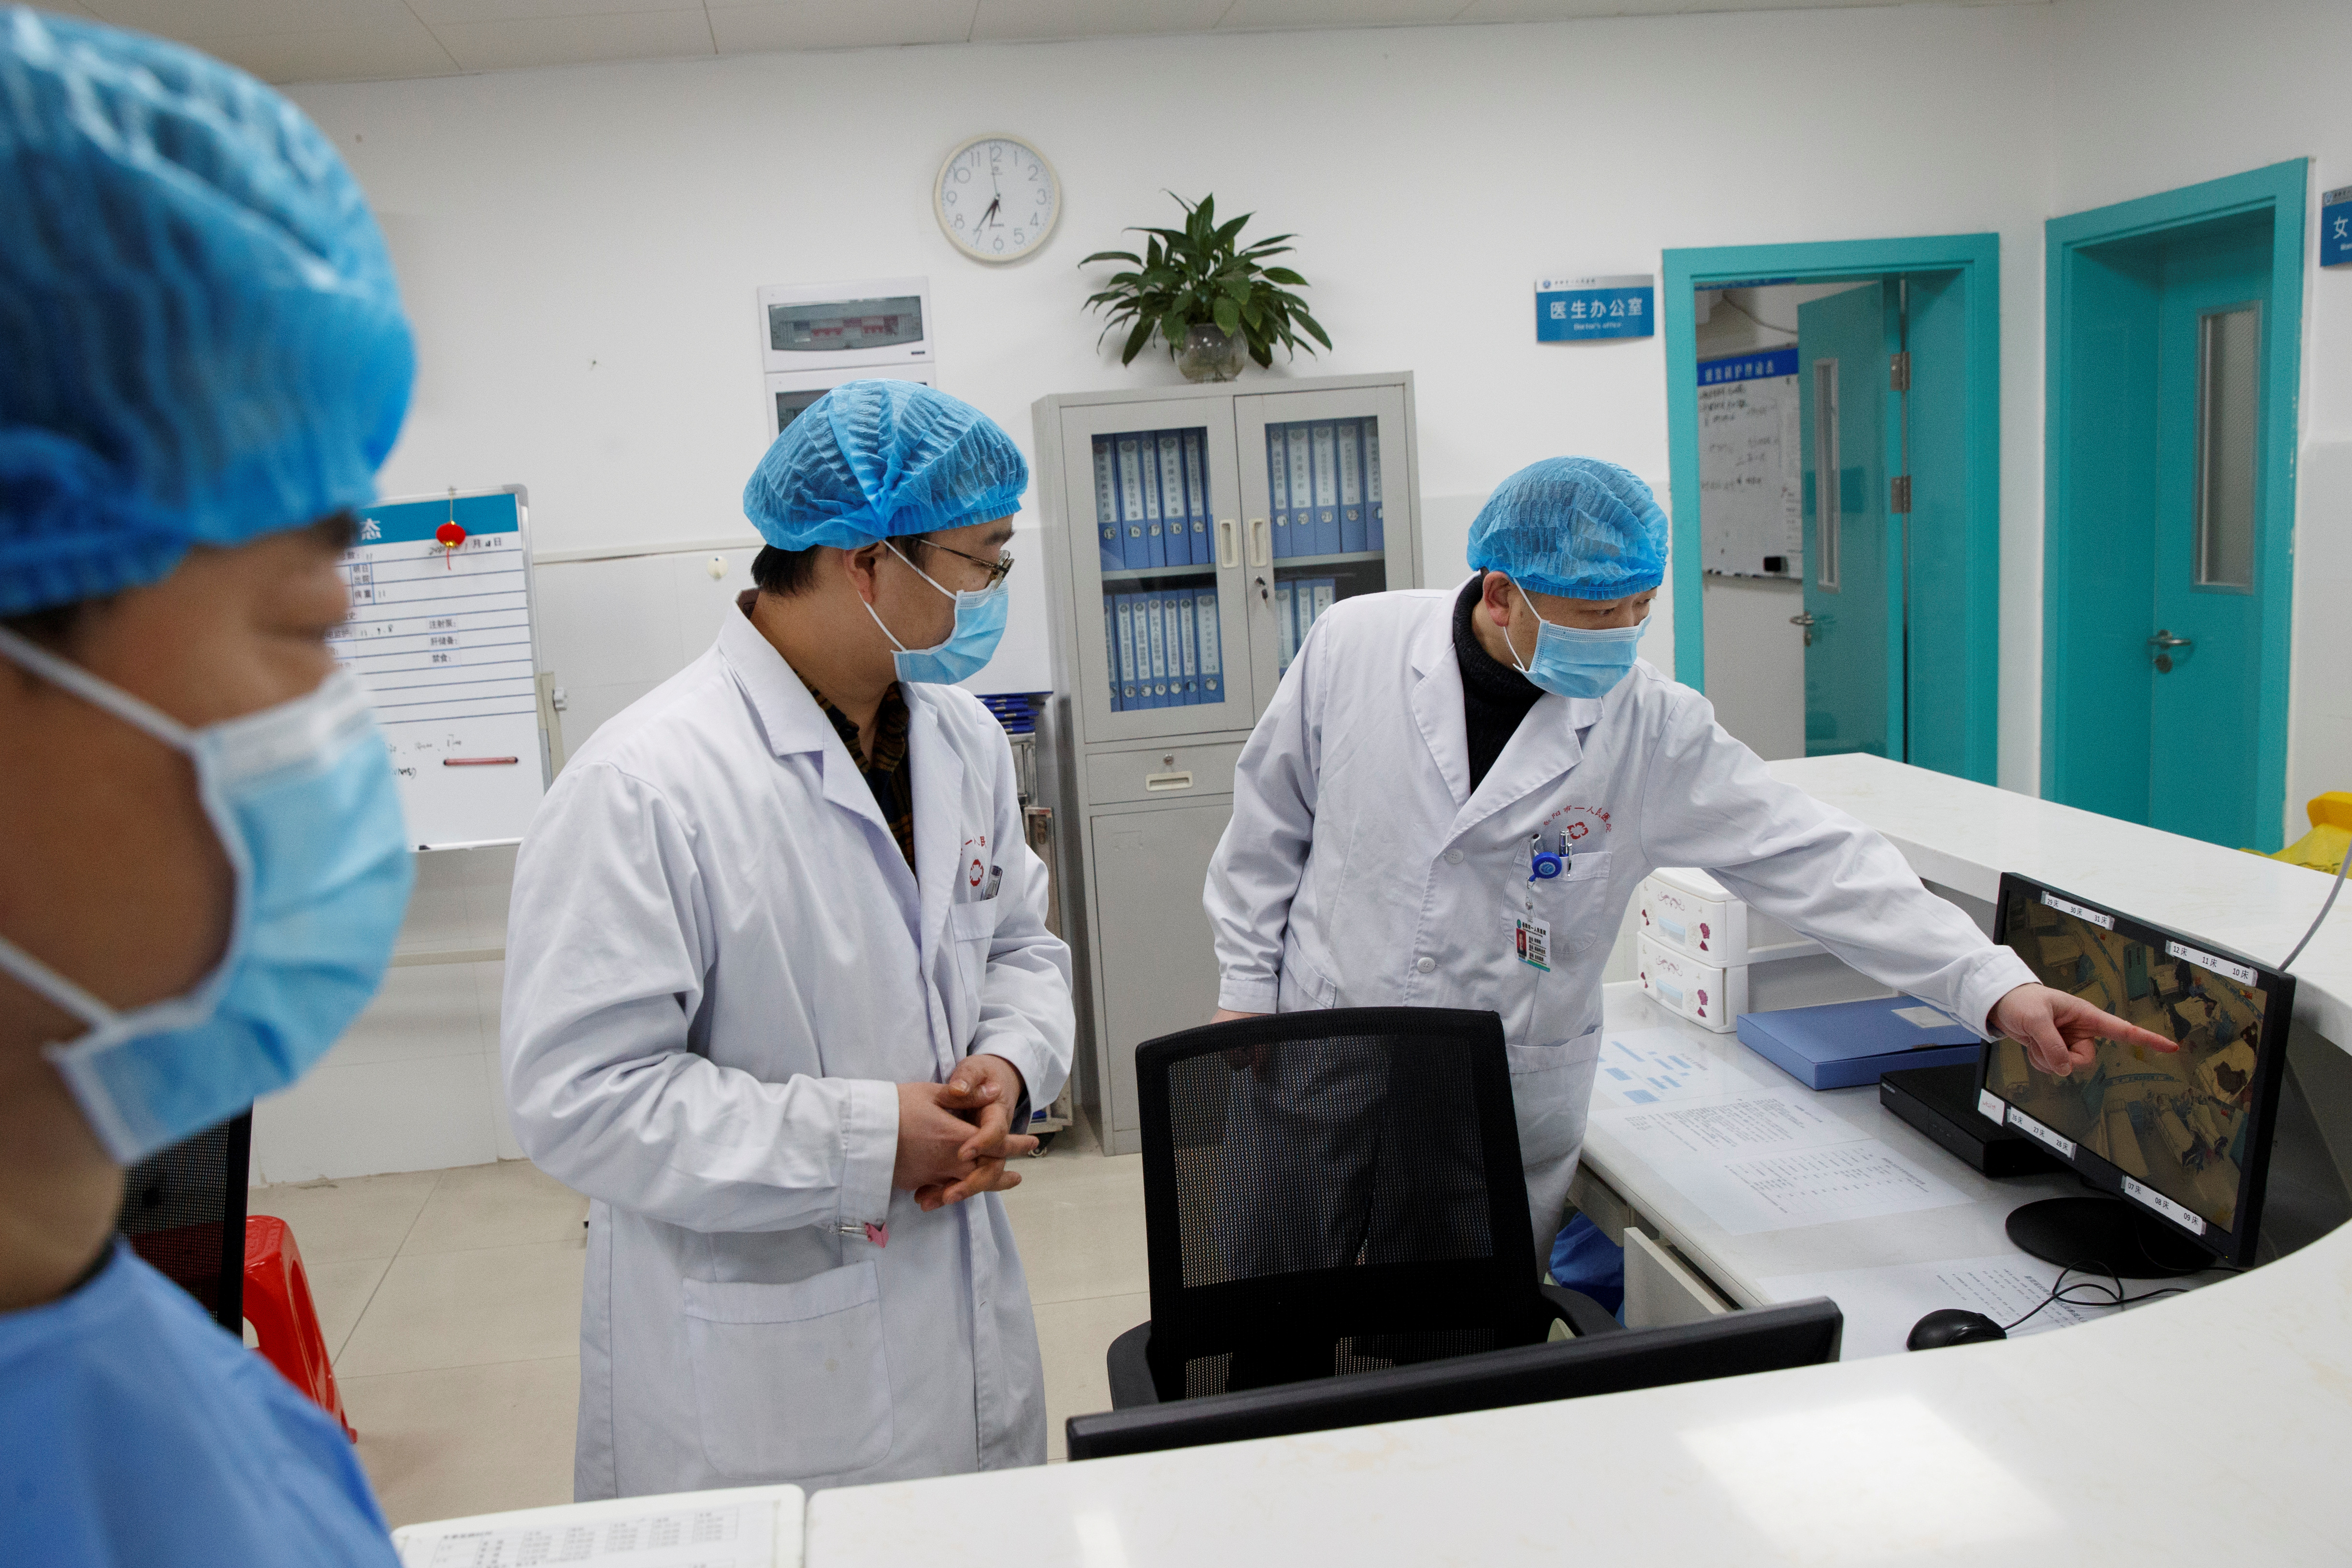 FILE PHOTO: Doctors look at a screen that shows the ward where patients who are infected with the coronavirus are treated at the First People's Hospital in Yueyang, Hunan Province, near the border to Hubei Province, which is under partial lockdown after an outbreak of a new coronavirus, in China January 28, 2020.  REUTERS/Thomas Peter/File Photo